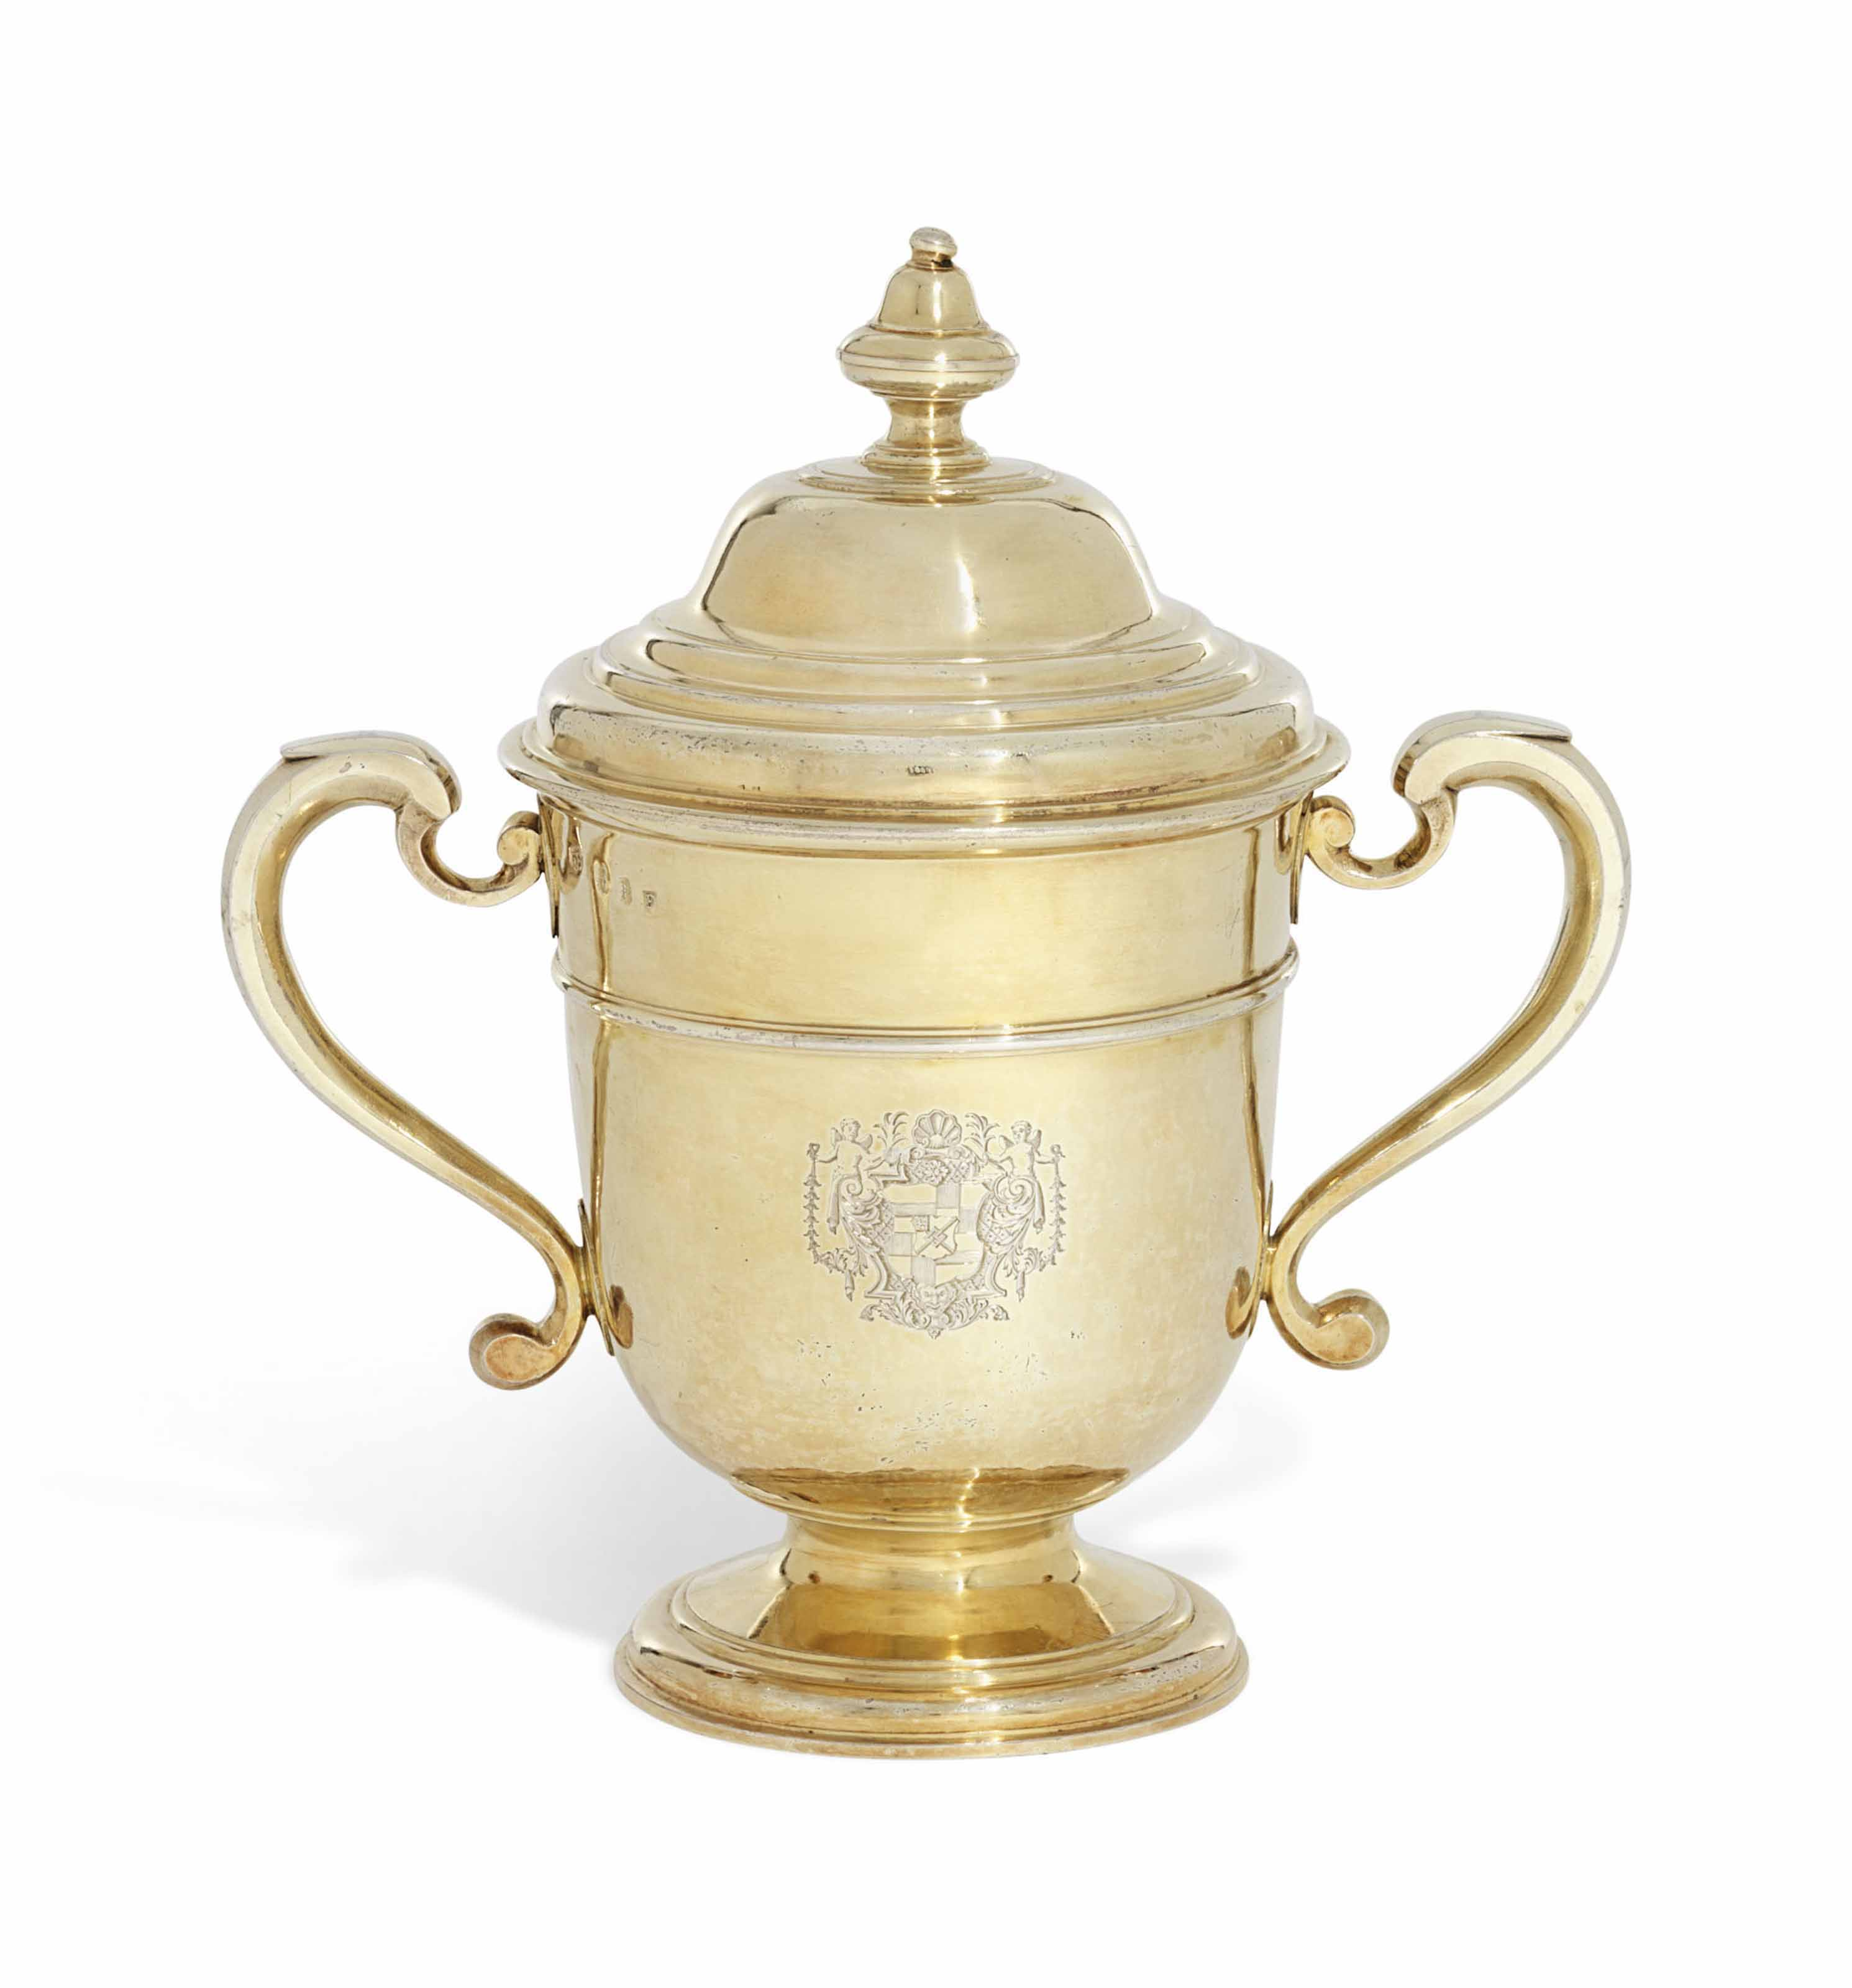 A GEORGE I SILVER-GILT CUP AND COVER